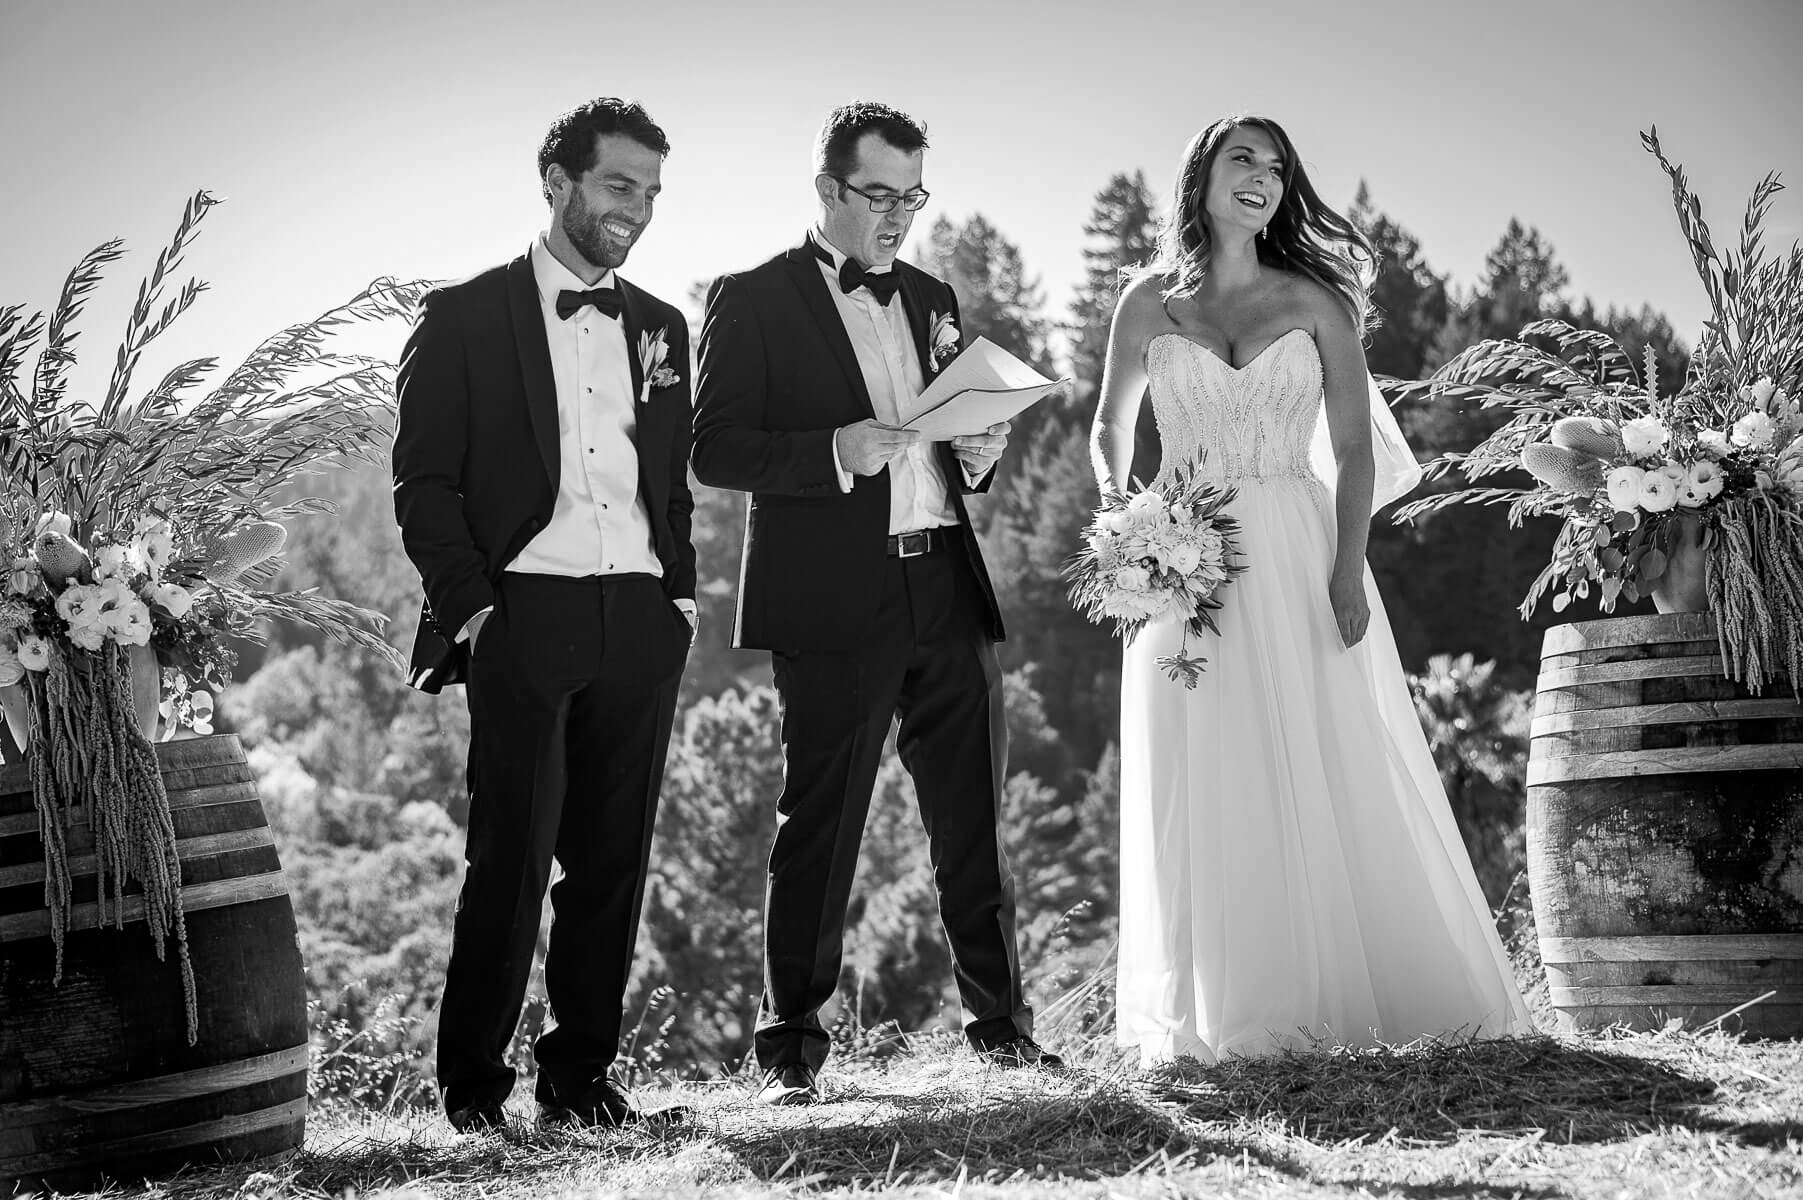 Boda Sarra & Maz amigos discurso | Manel Tamayo Wedding Photographer